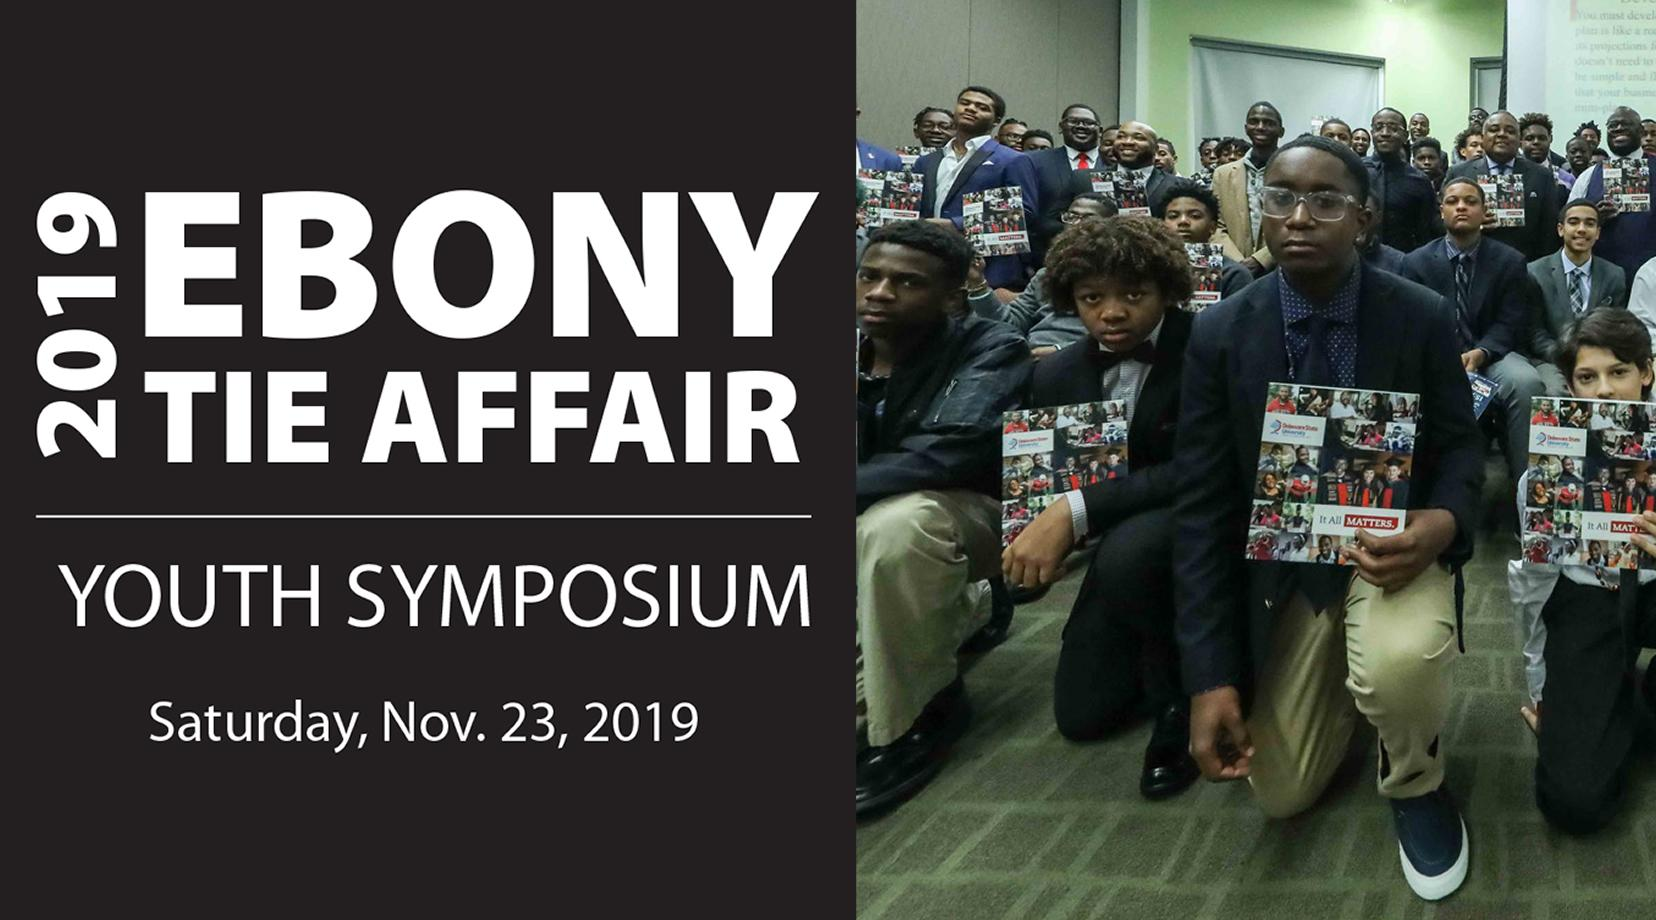 Ebony Tie Affair Youth Symposium